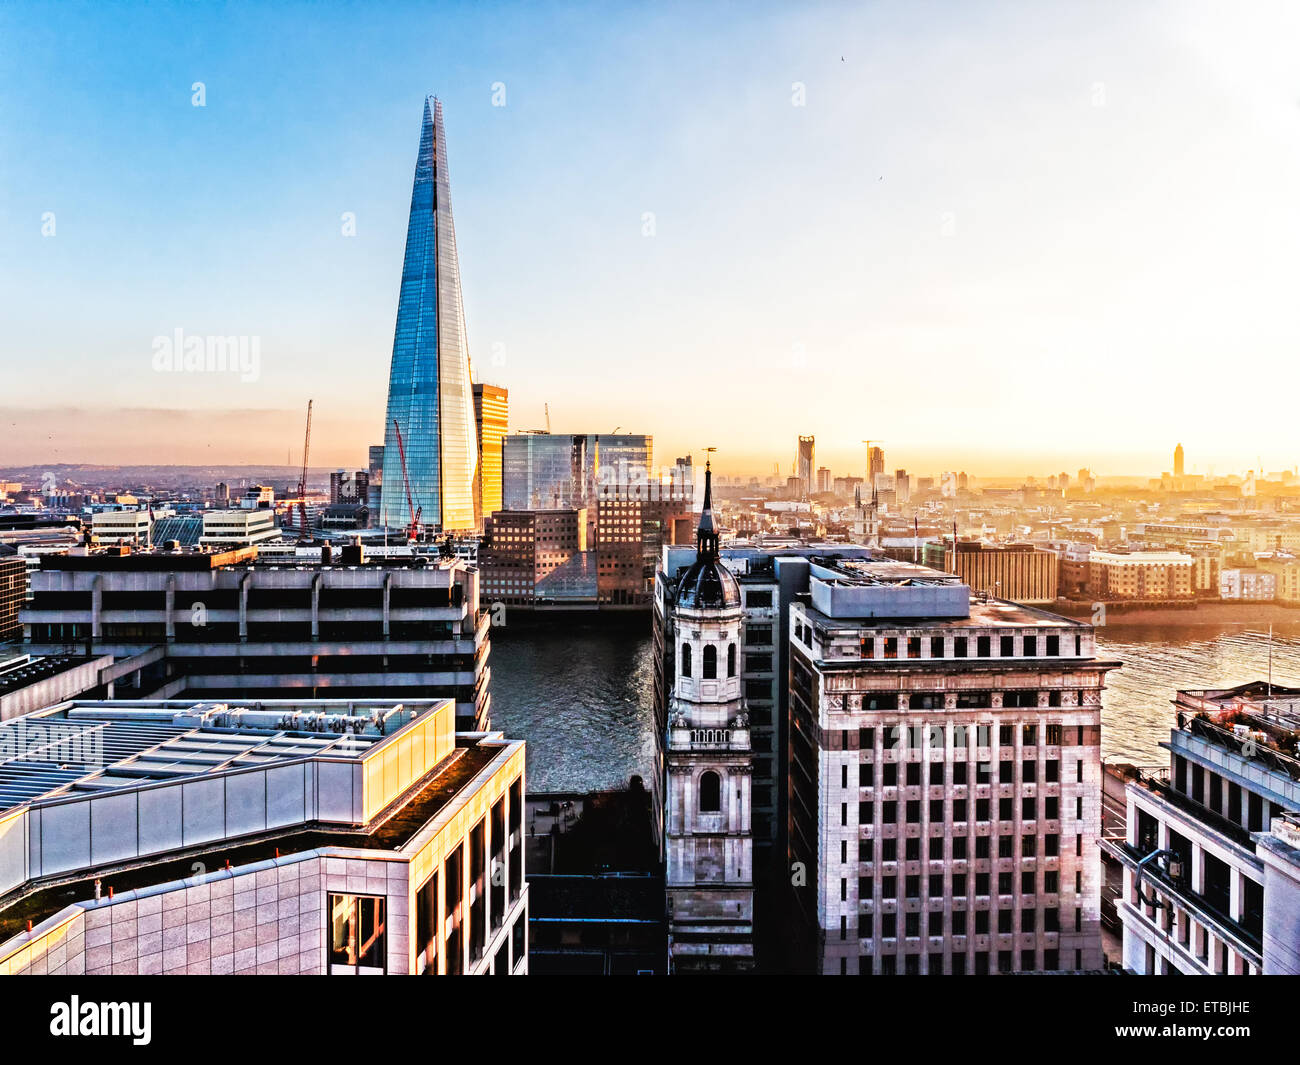 Aerial the new London skyline with The Shard, Thames River and the skyscrapers of the City - Stock Image